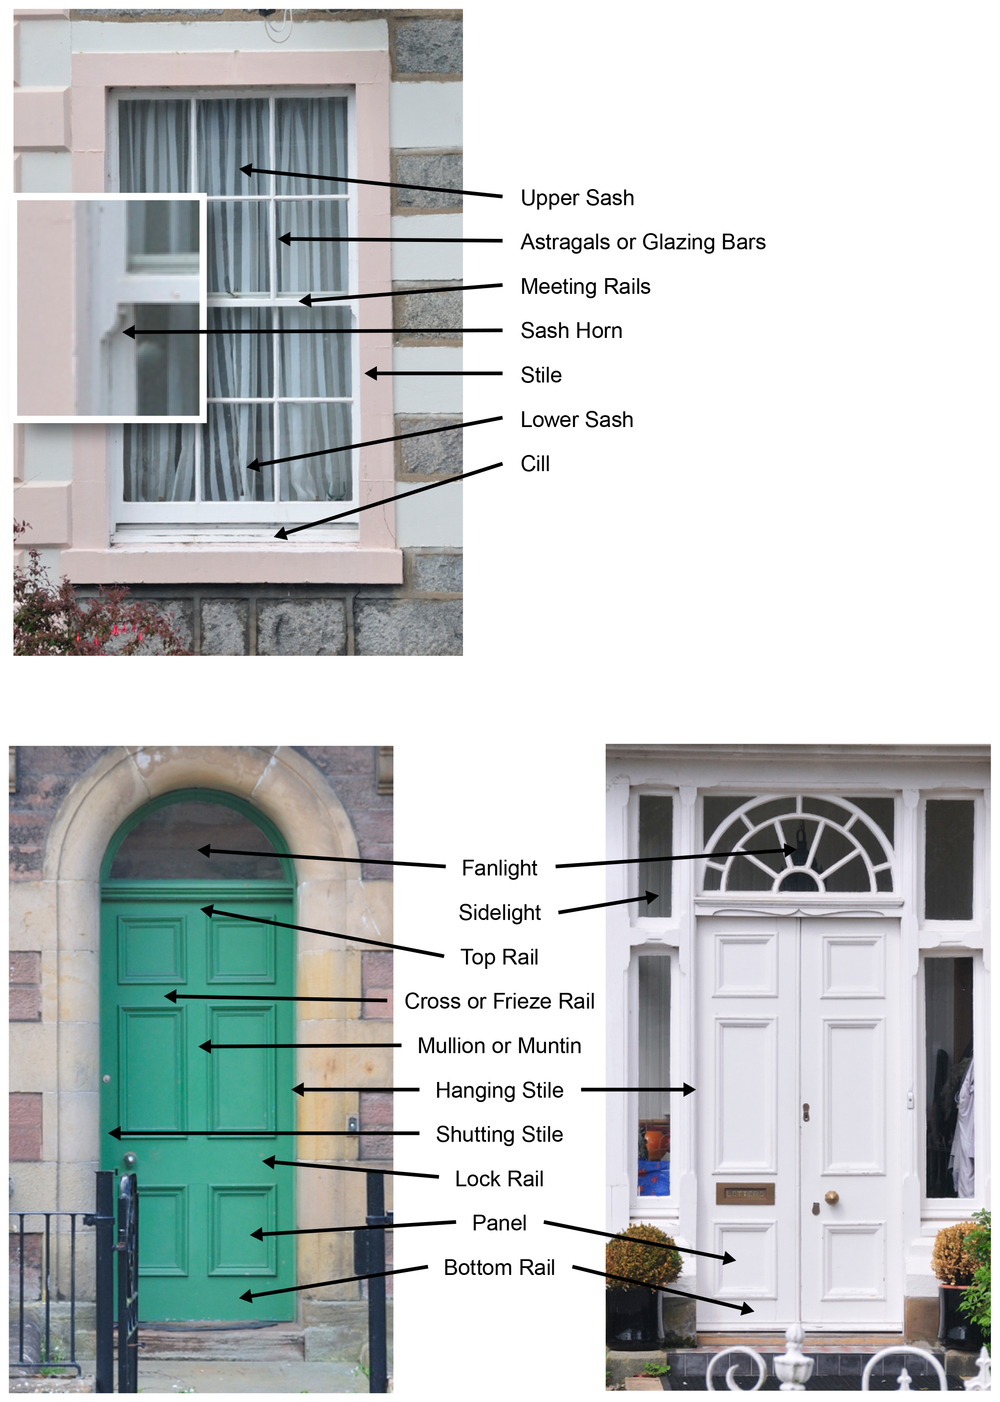 The anatomy of a traditional sash and case window and traditional doors.  sc 1 st  The Highland Council Consultation Portal & The Highland Council - Historic Windows and Doors - 3 Repair and ...